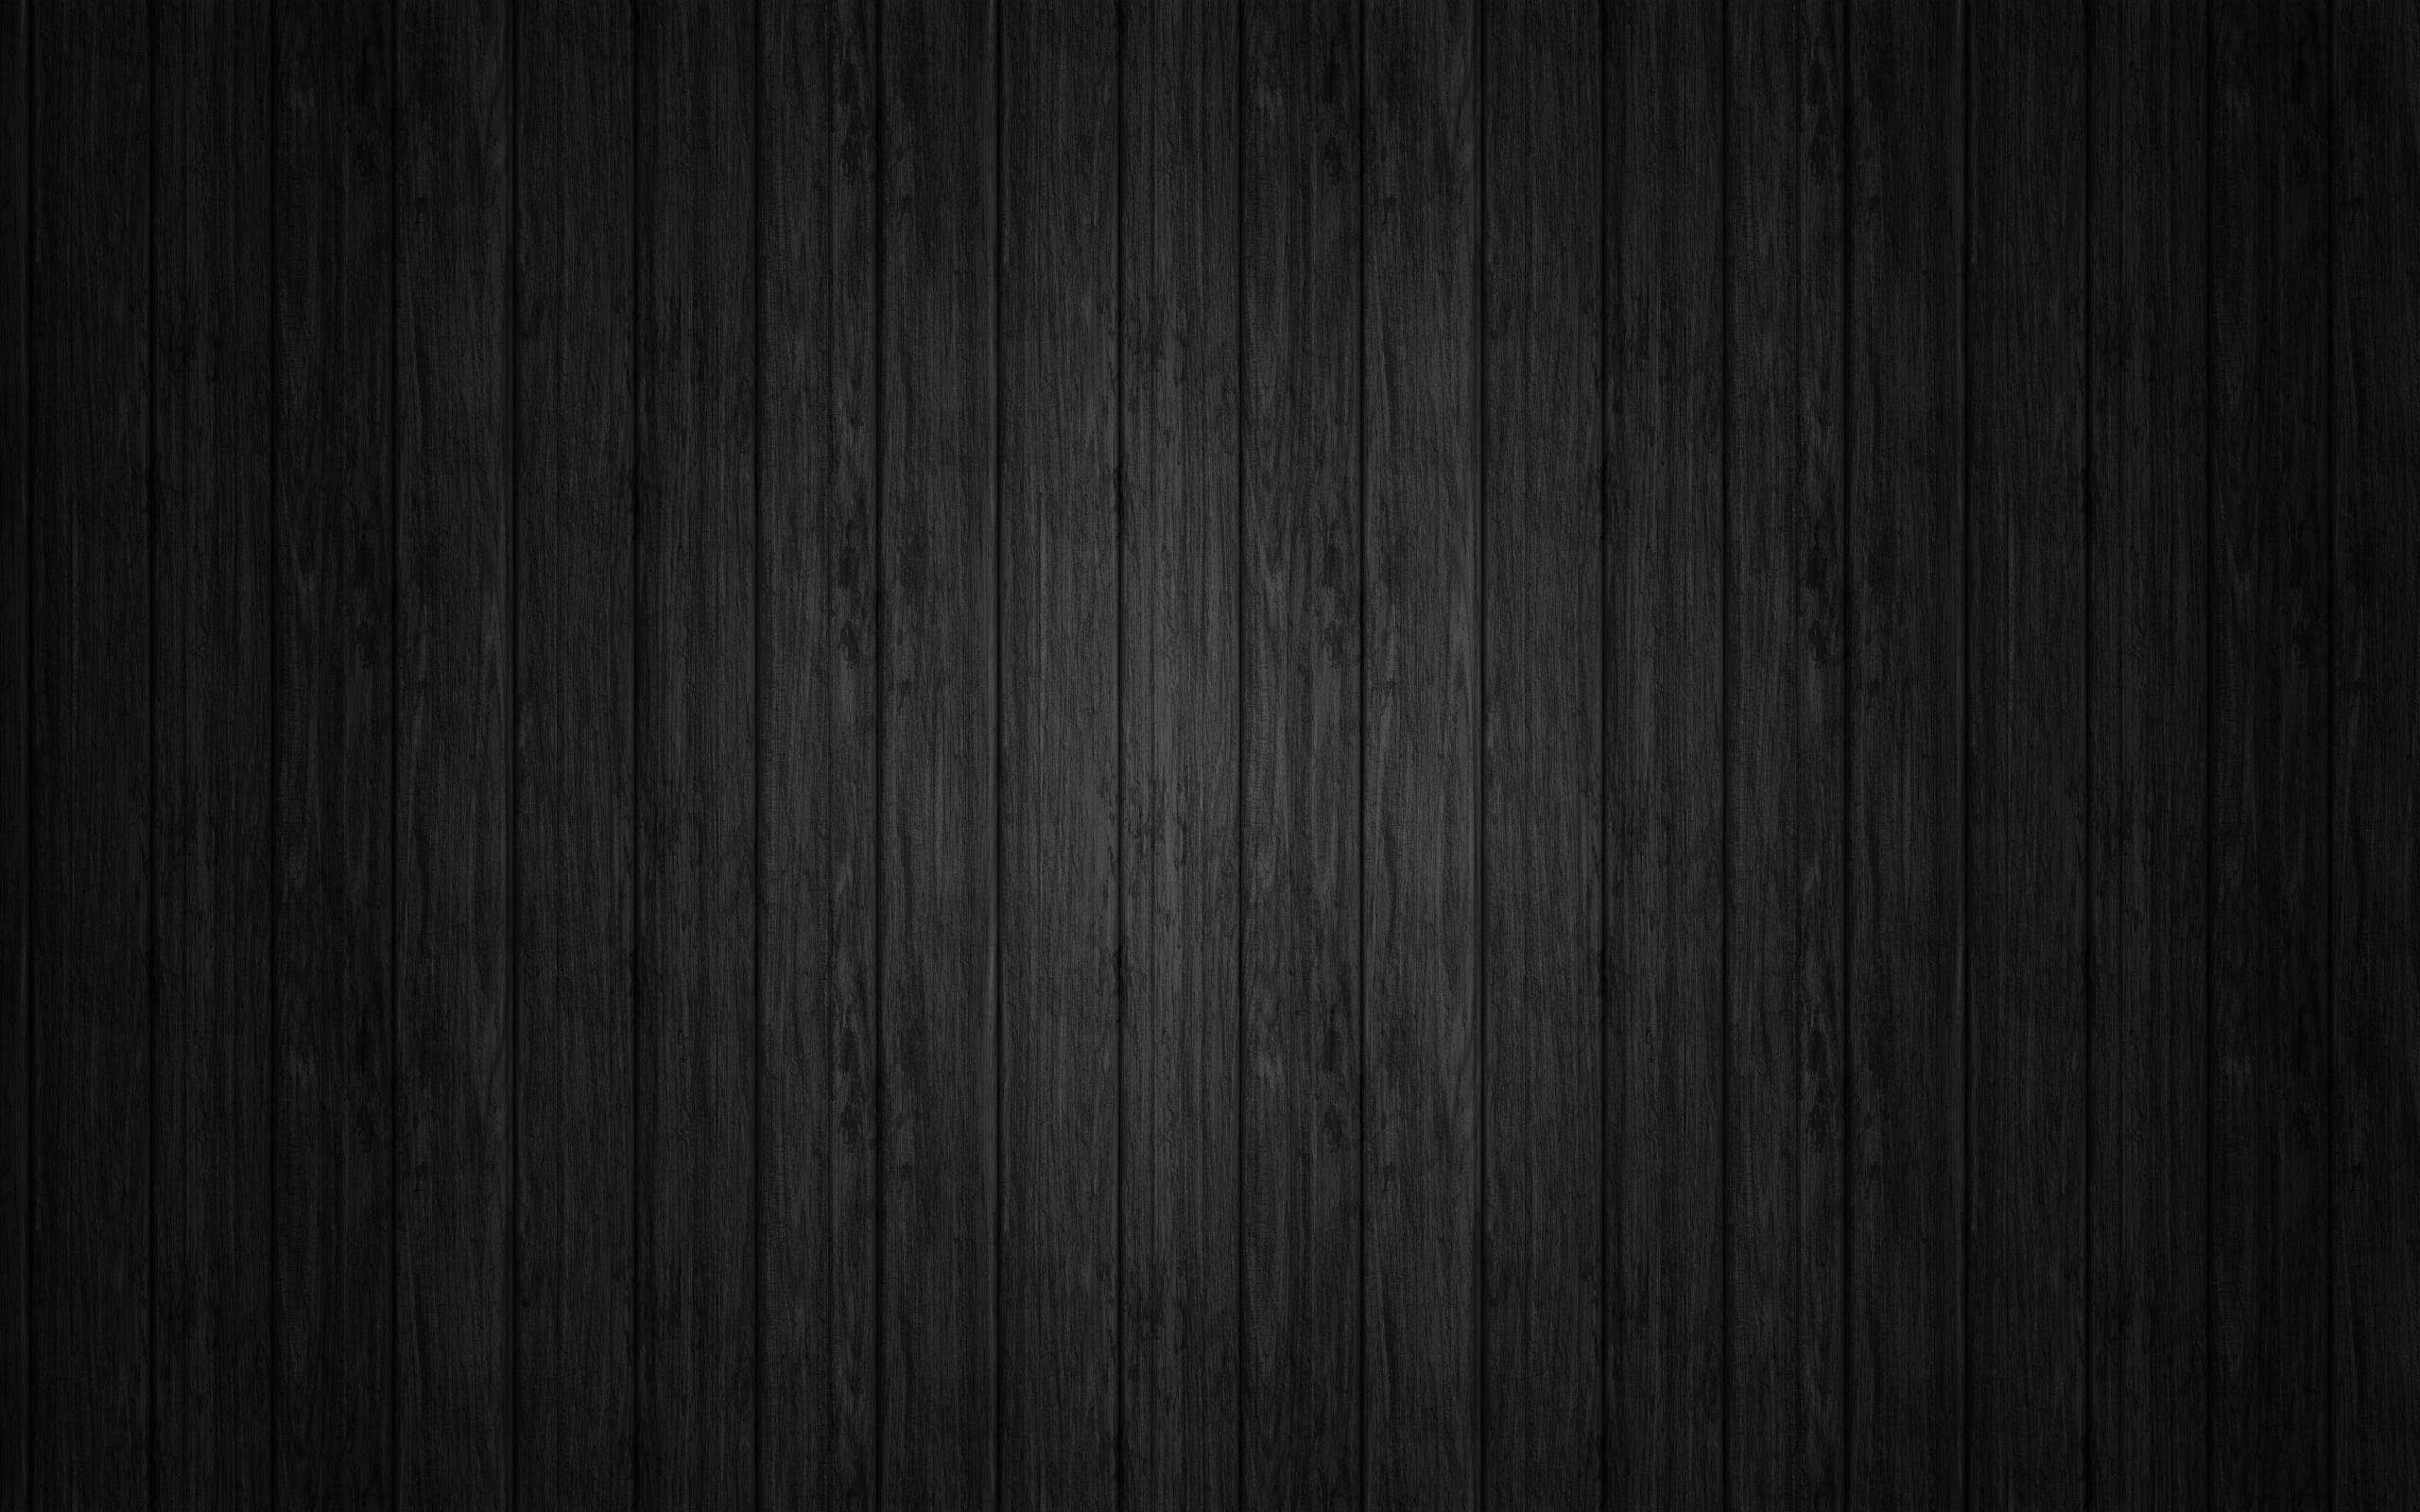 Dark Wood Wallpaper